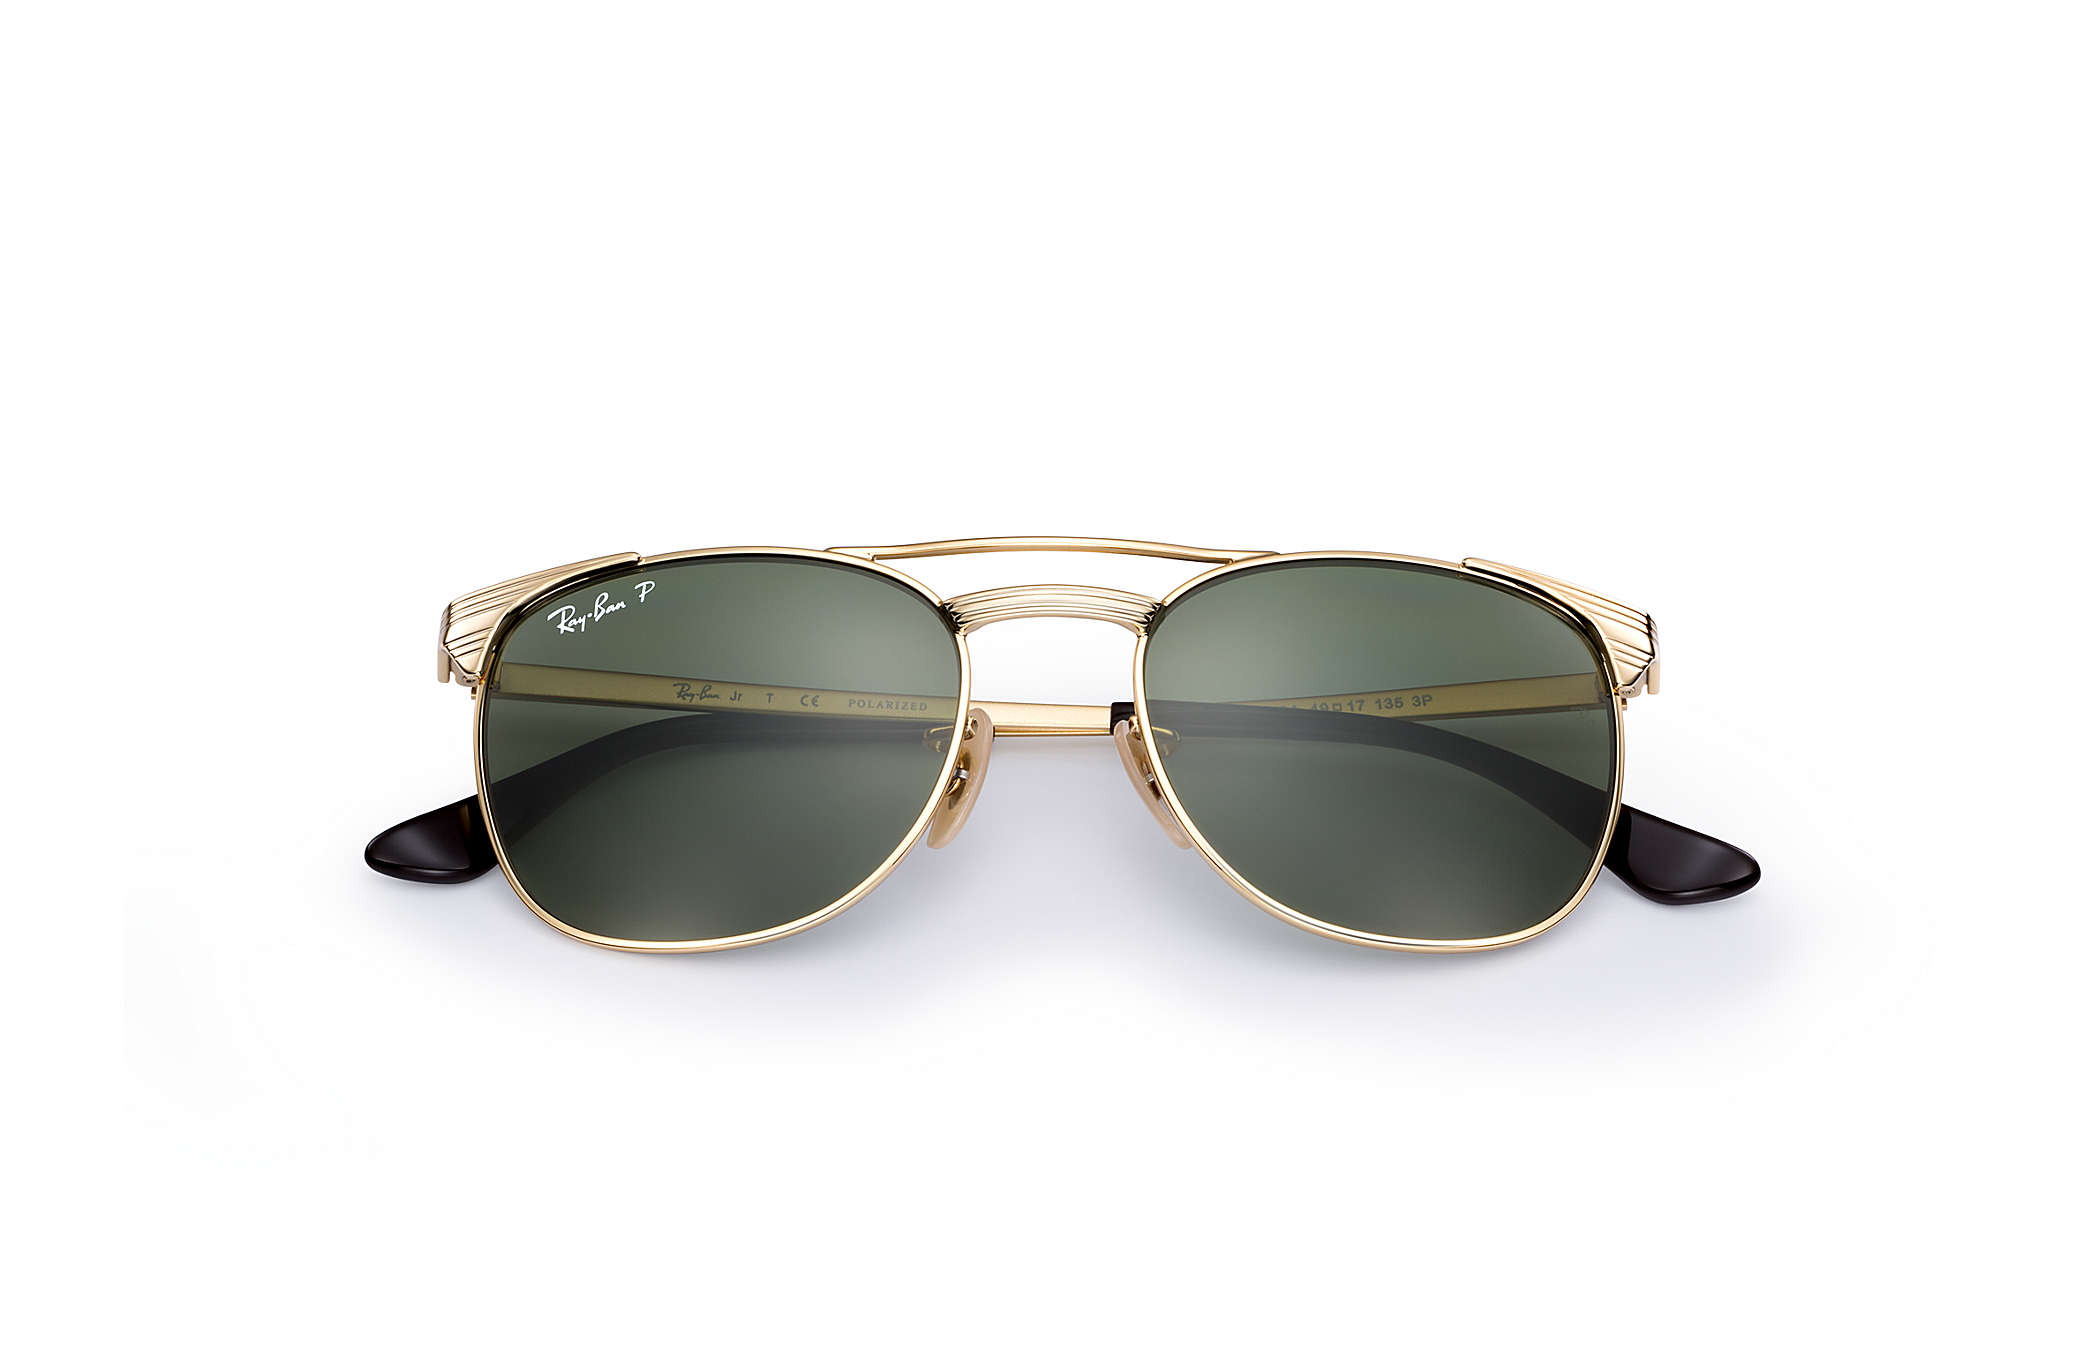 bd3a8d5866a432 Ray-Ban Signet Junior RB9540S Gold - Metal - Green Polarized Lenses ...